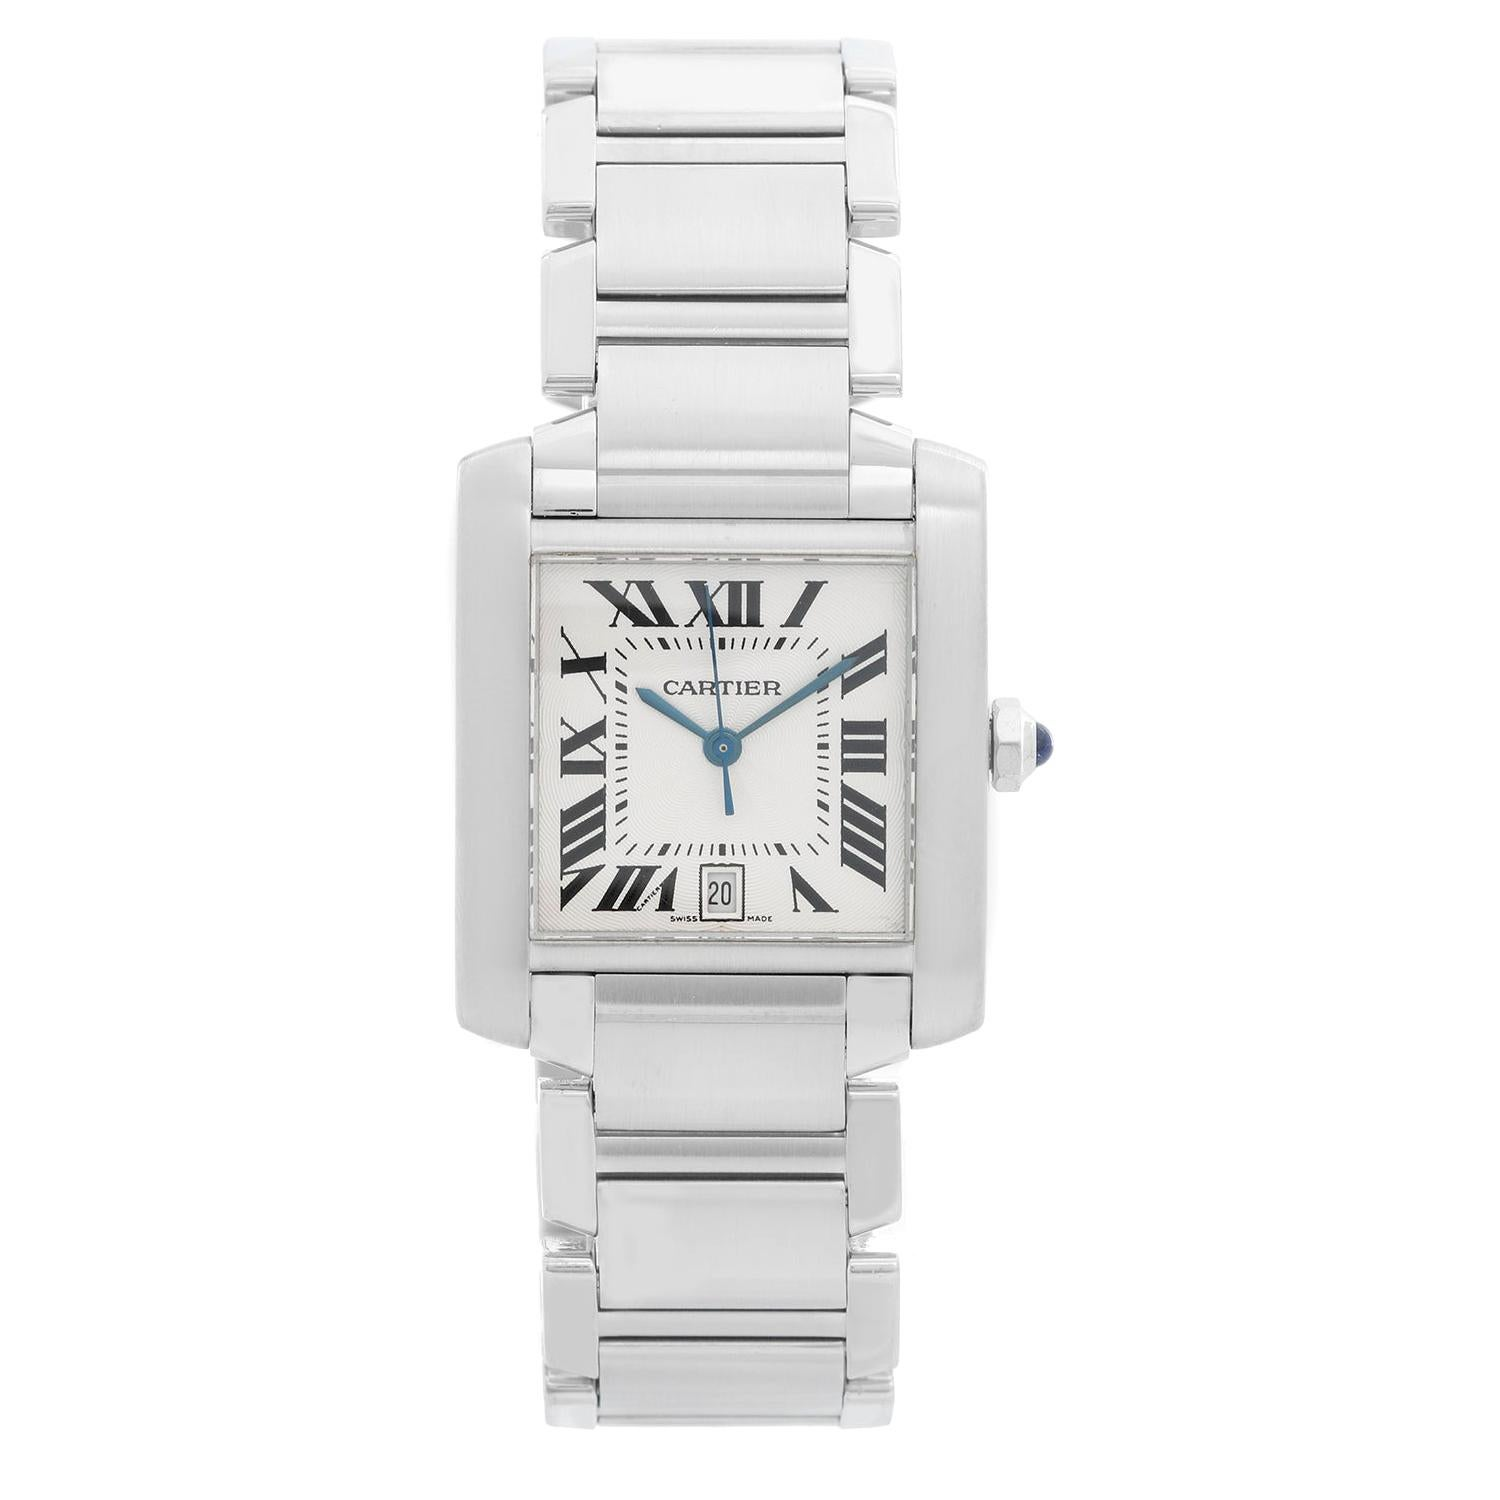 Cartier Stainless Steel Tank Francaise Watch W51002Q3